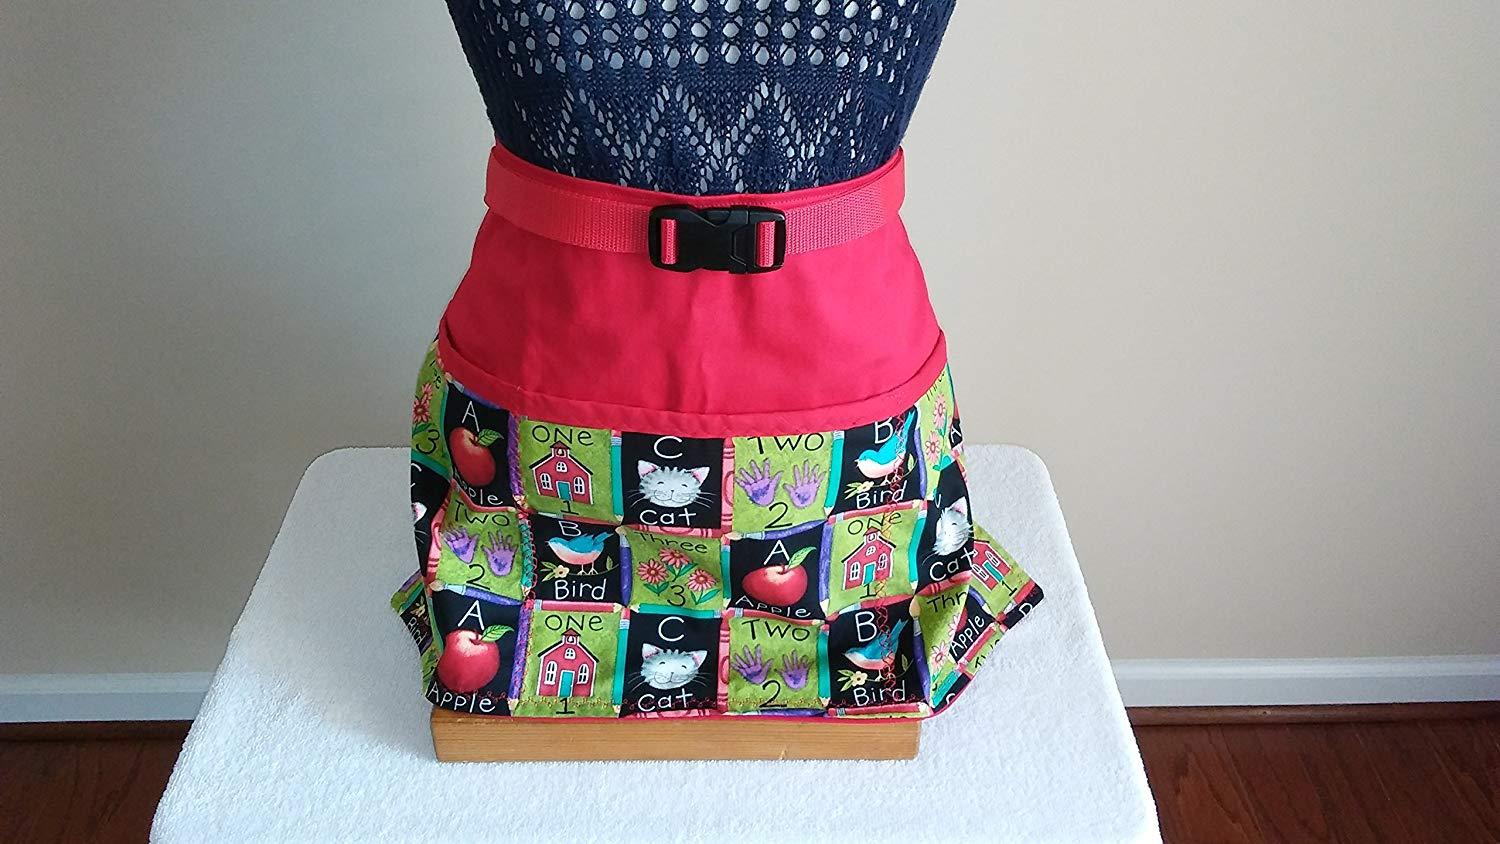 ADJUSTABLE NO TIE APRON - LIMITED EDITION - Pencil Blocked School Theme/3 Lined Pockets Waist Apron/Red binding on top of pockets/One size fits most/The Perfect Teacher's Gift